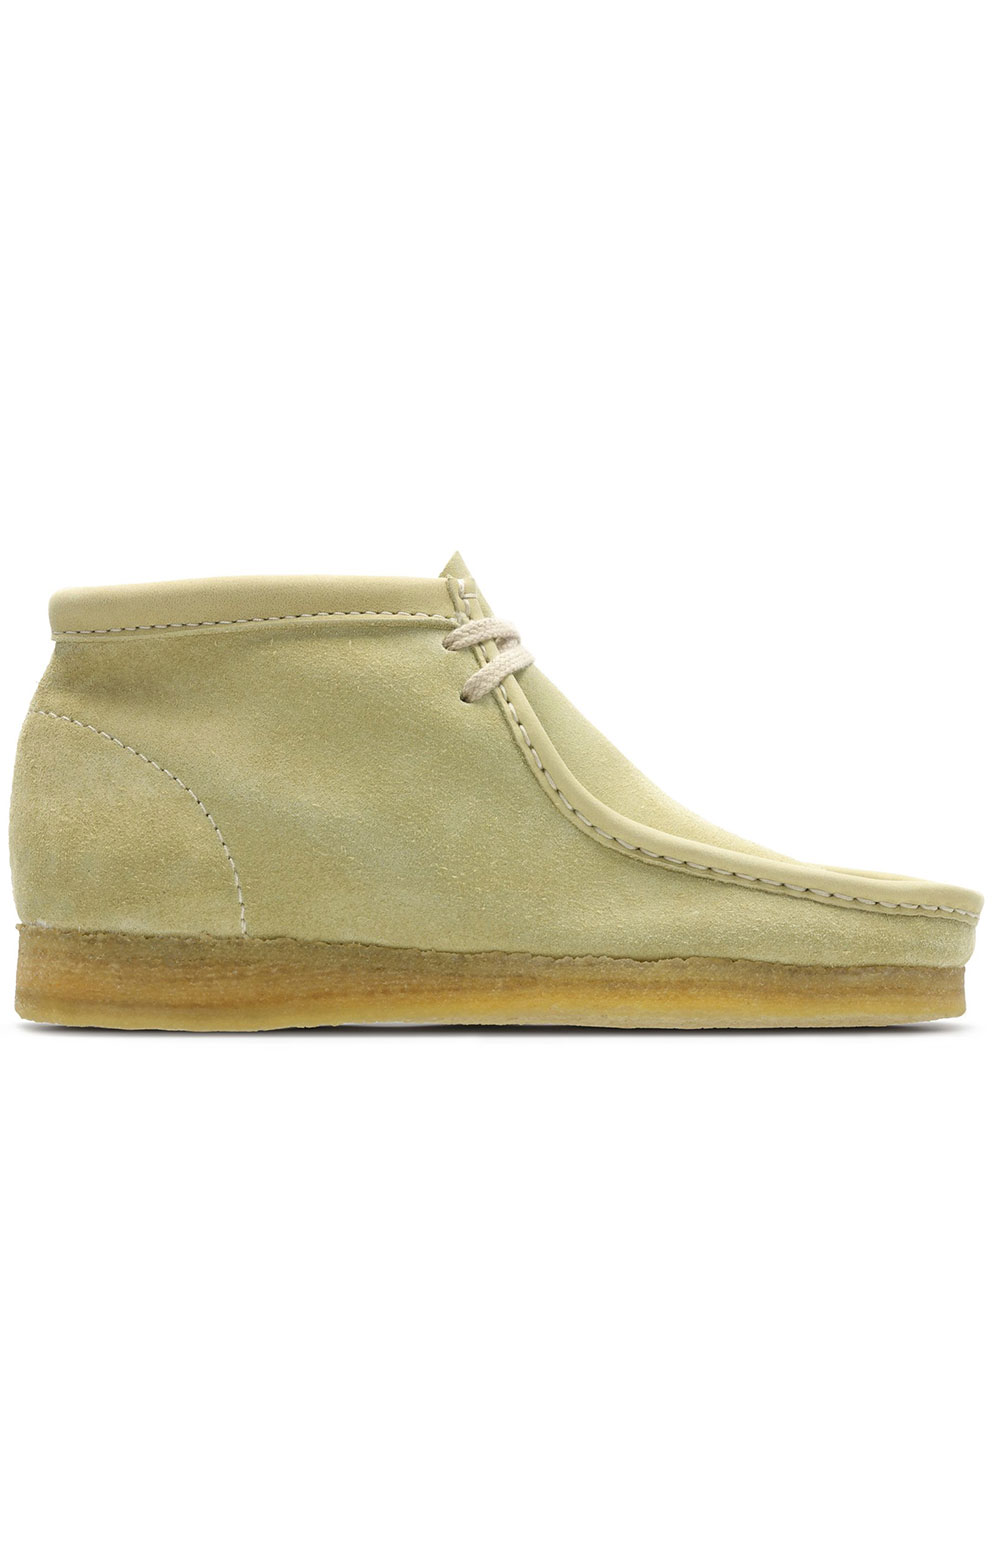 (26133283) Wallabee Boot - Maple Suede